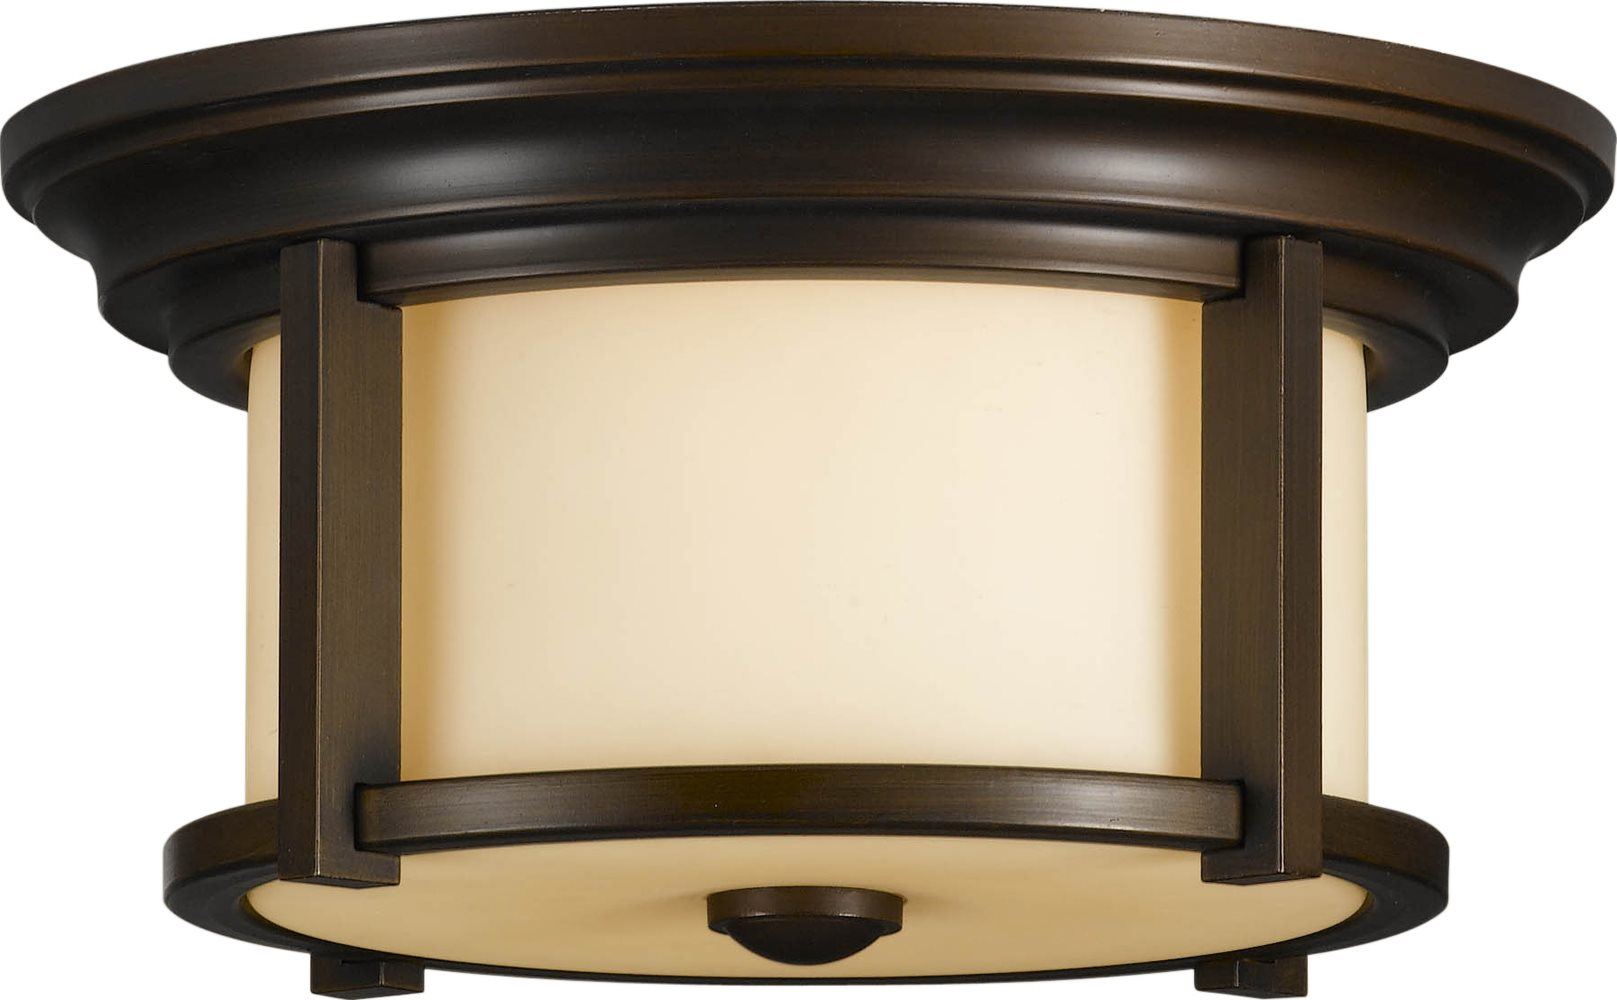 Merrill Transitional Outdoor Flush Mount Ceiling Light XFRM ZBTH 3157LO